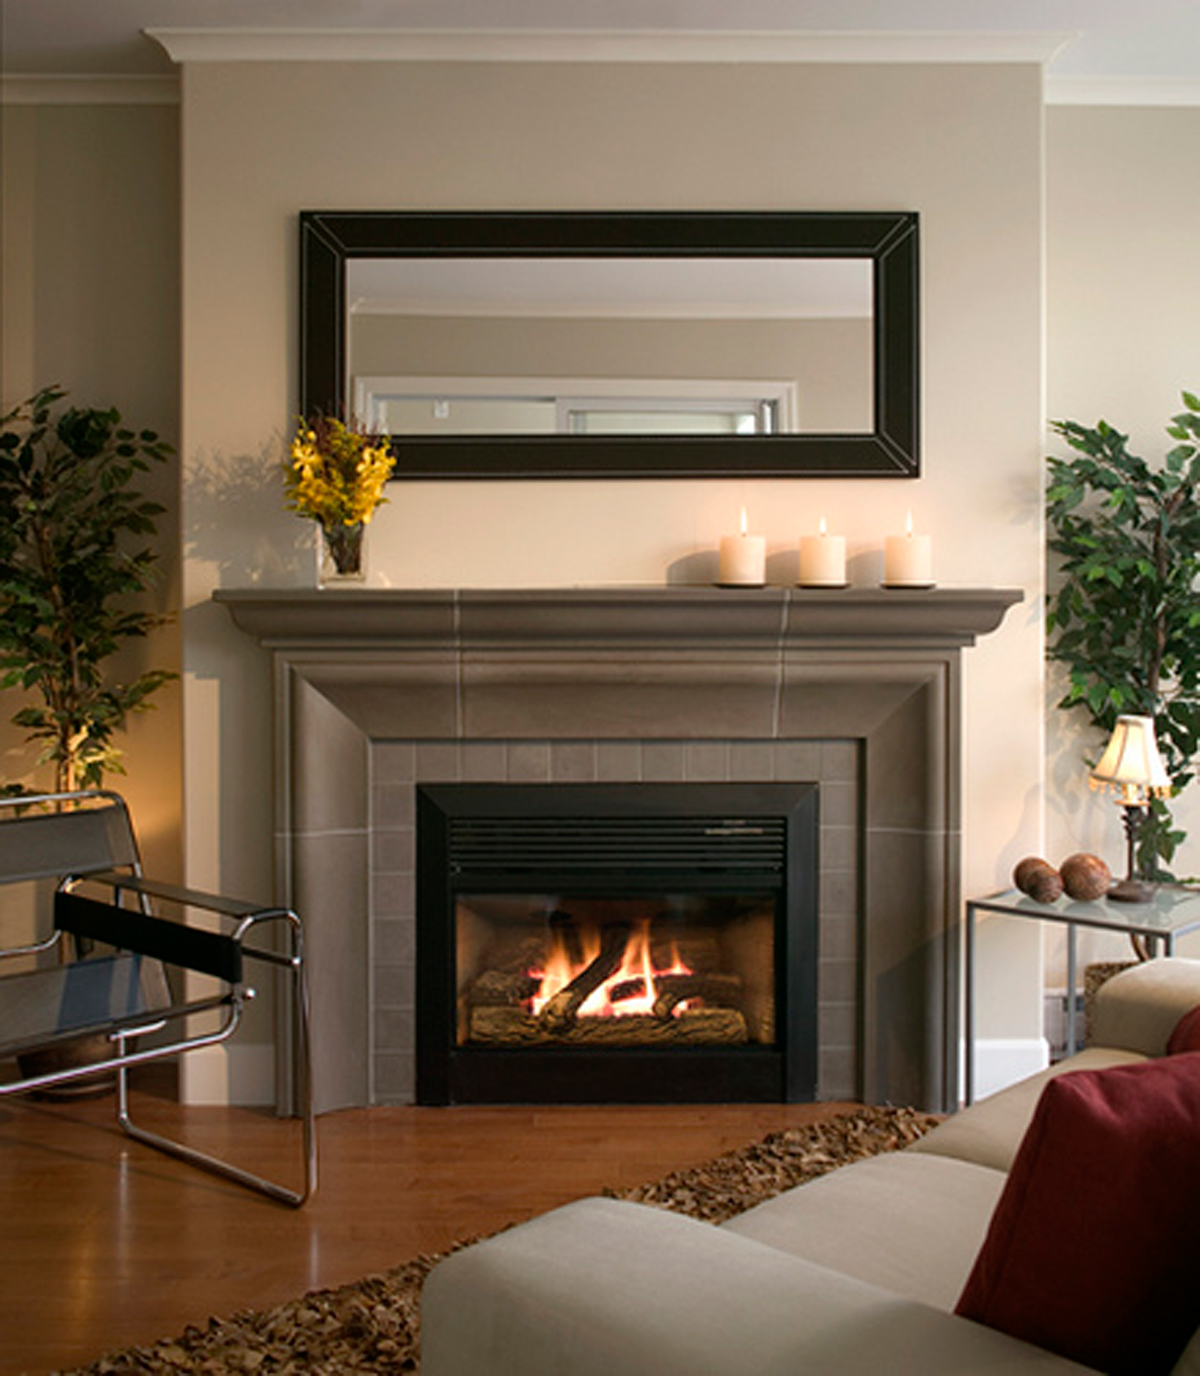 Cool fireplace designs homesfeed - Living room with fireplace ...